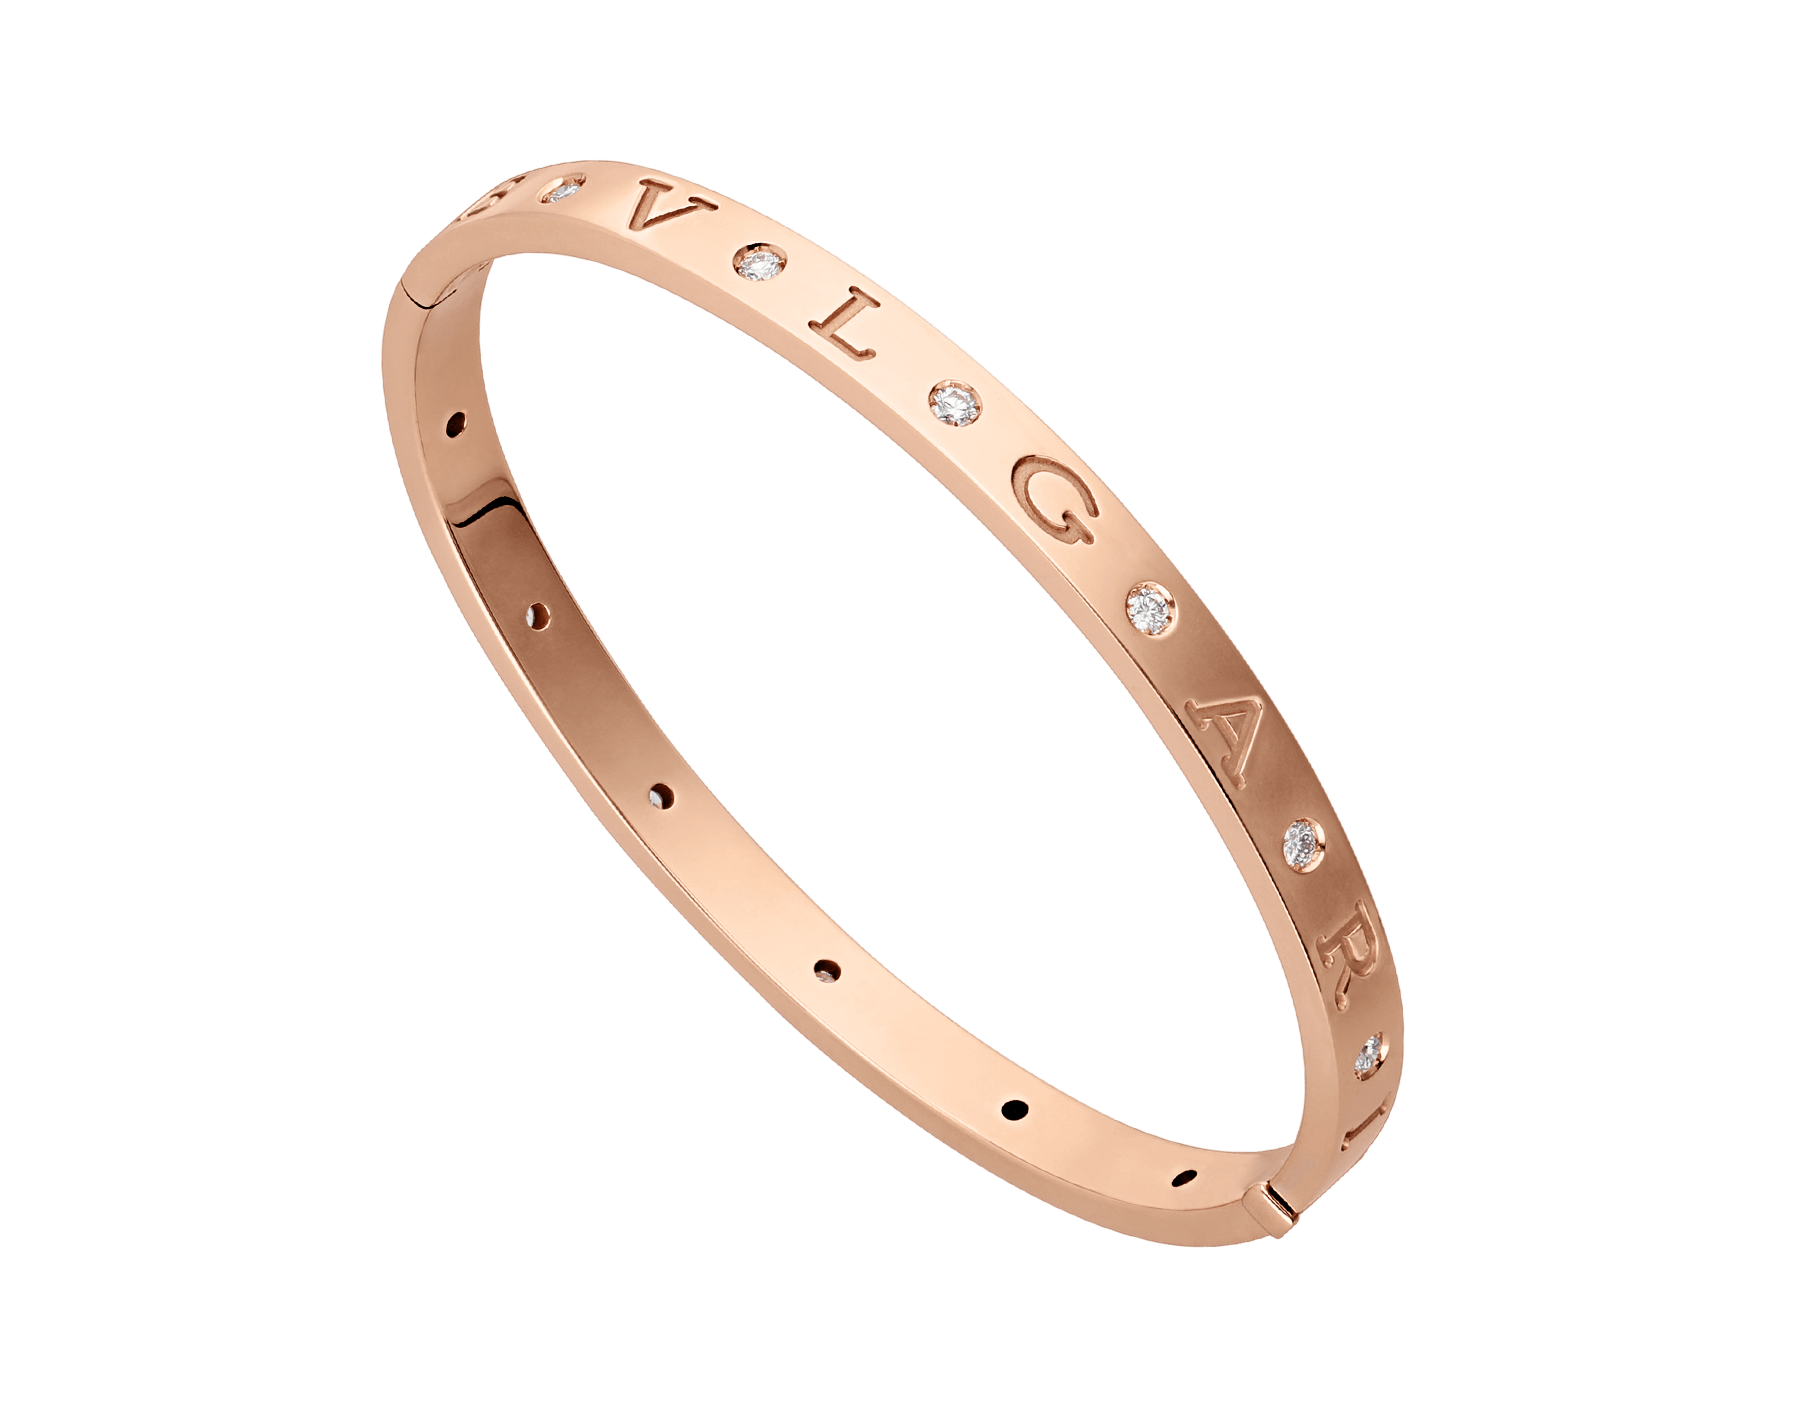 BVLGARI BVLGARI 18 kt rose gold bangle bracelet set with twelve diamonds. BR858007 image 1